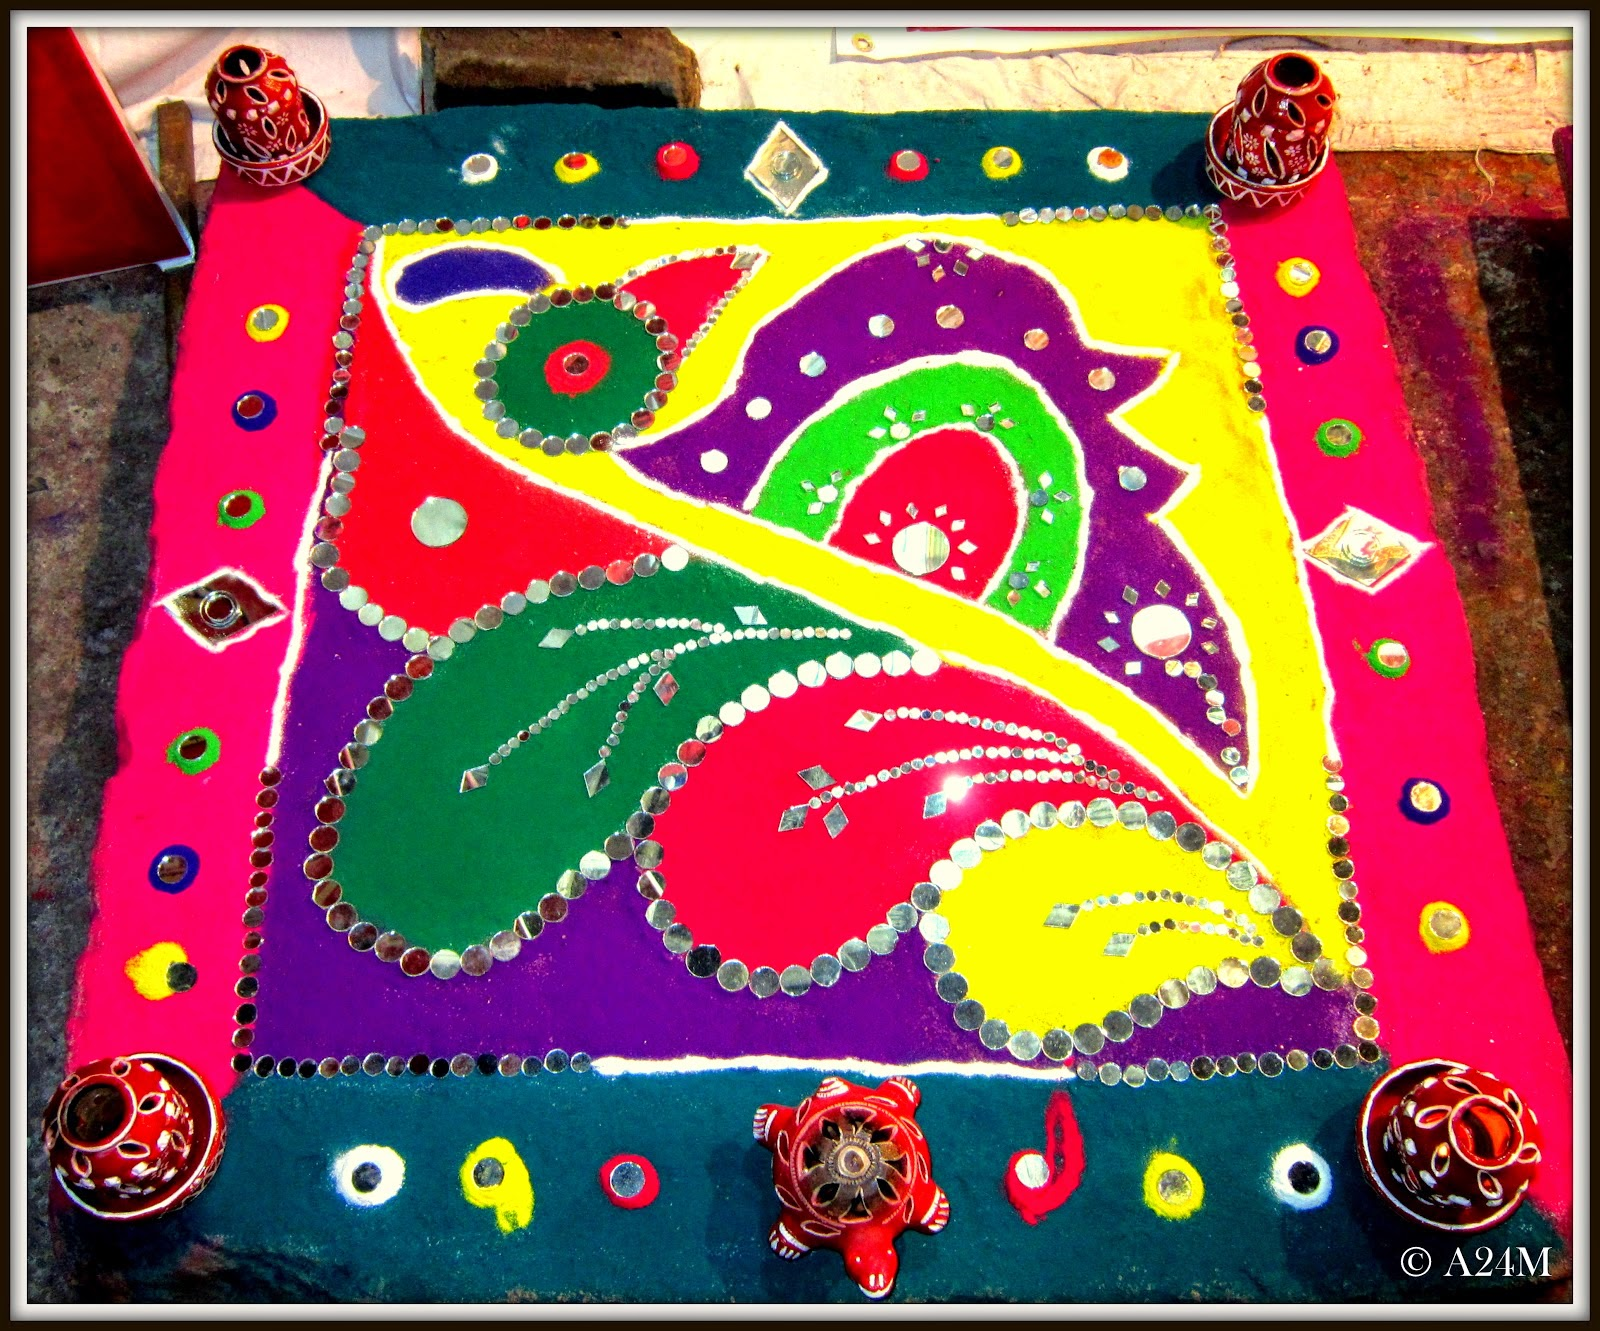 Rangoli Designs For Competition With Concepts Colourful rangoli designs